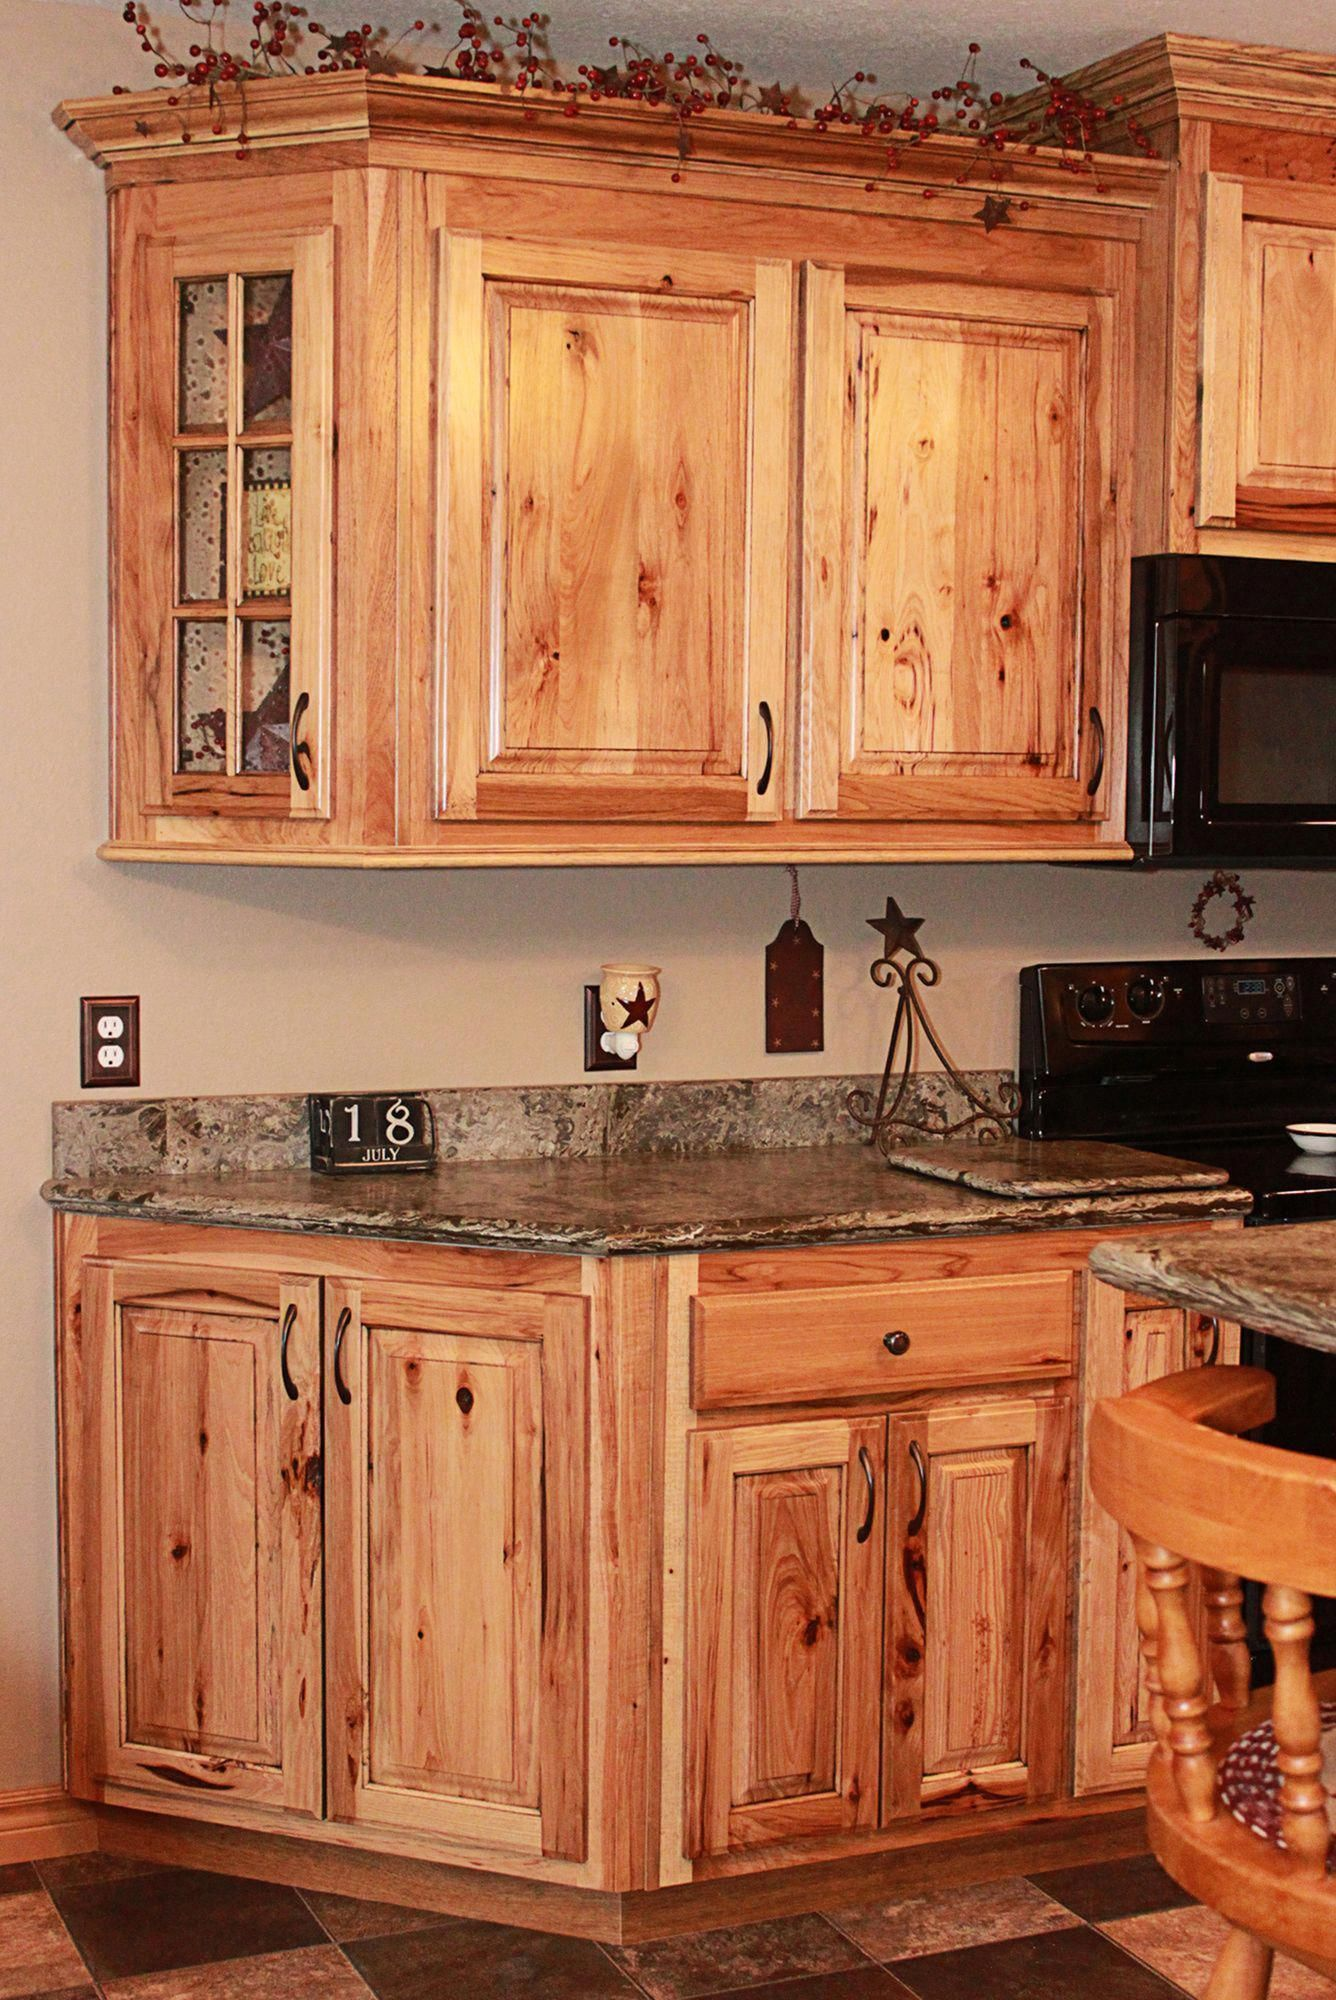 Beneficial referral associated to Kitchen Reno Ideas in ...